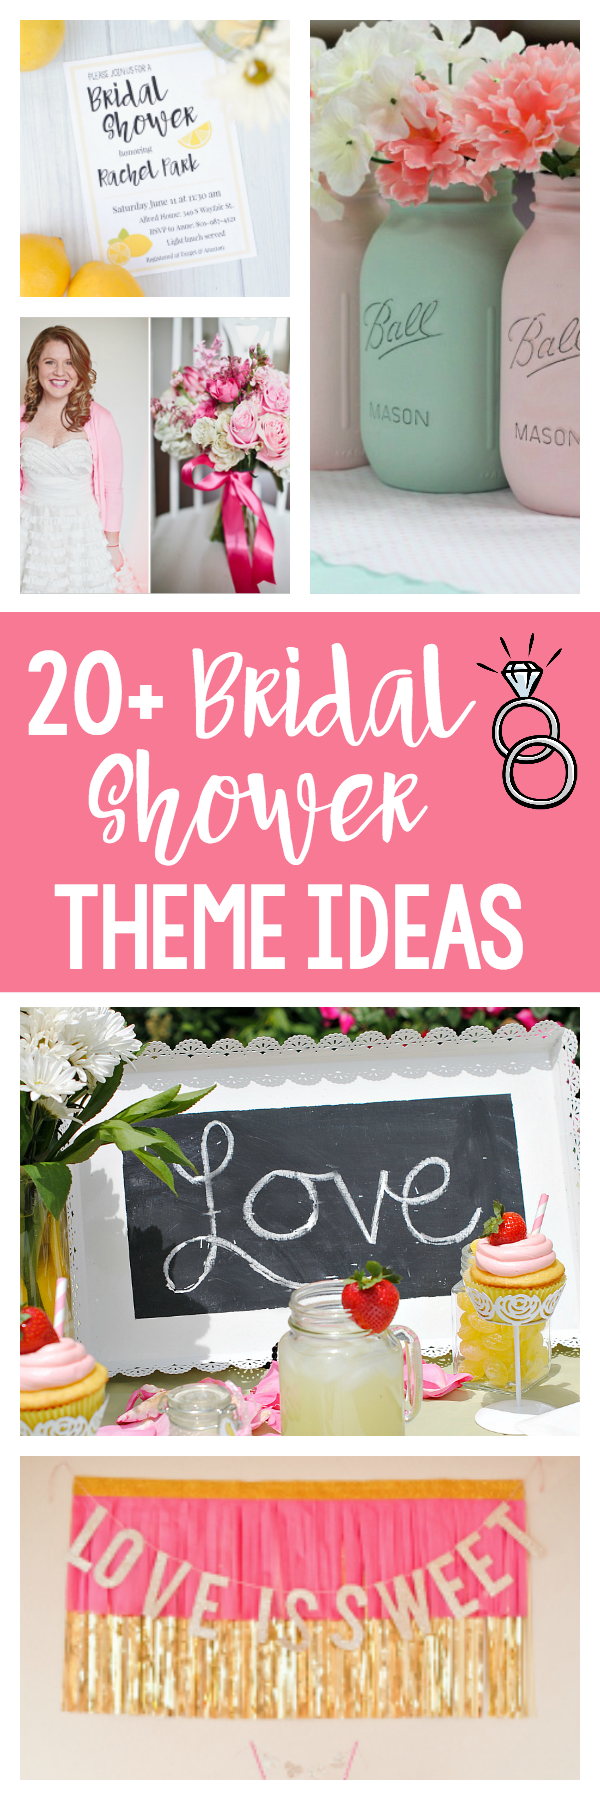 20 fun bridal shower themes and ideas everything from summer fun to vintage and a